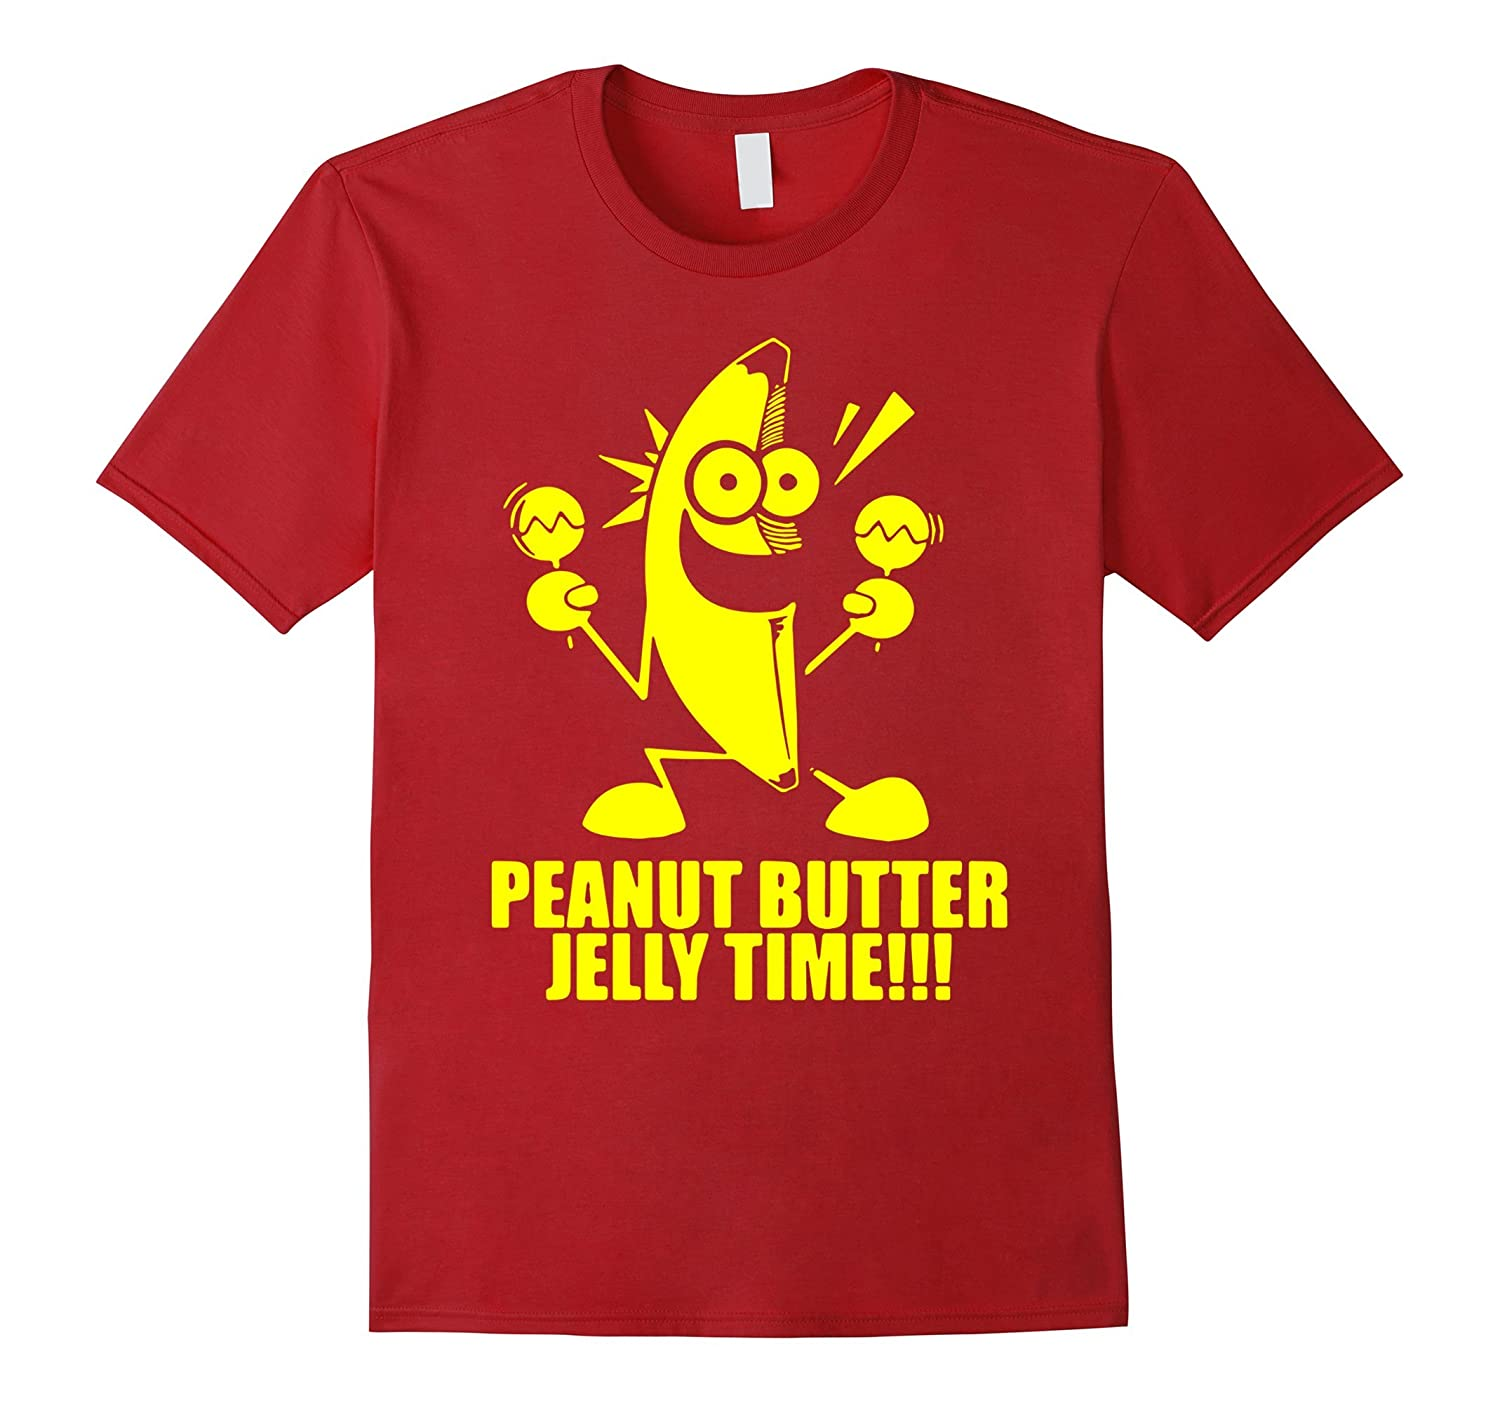 Banana Peanut Butter Jelly Time Shirt Premium-RT